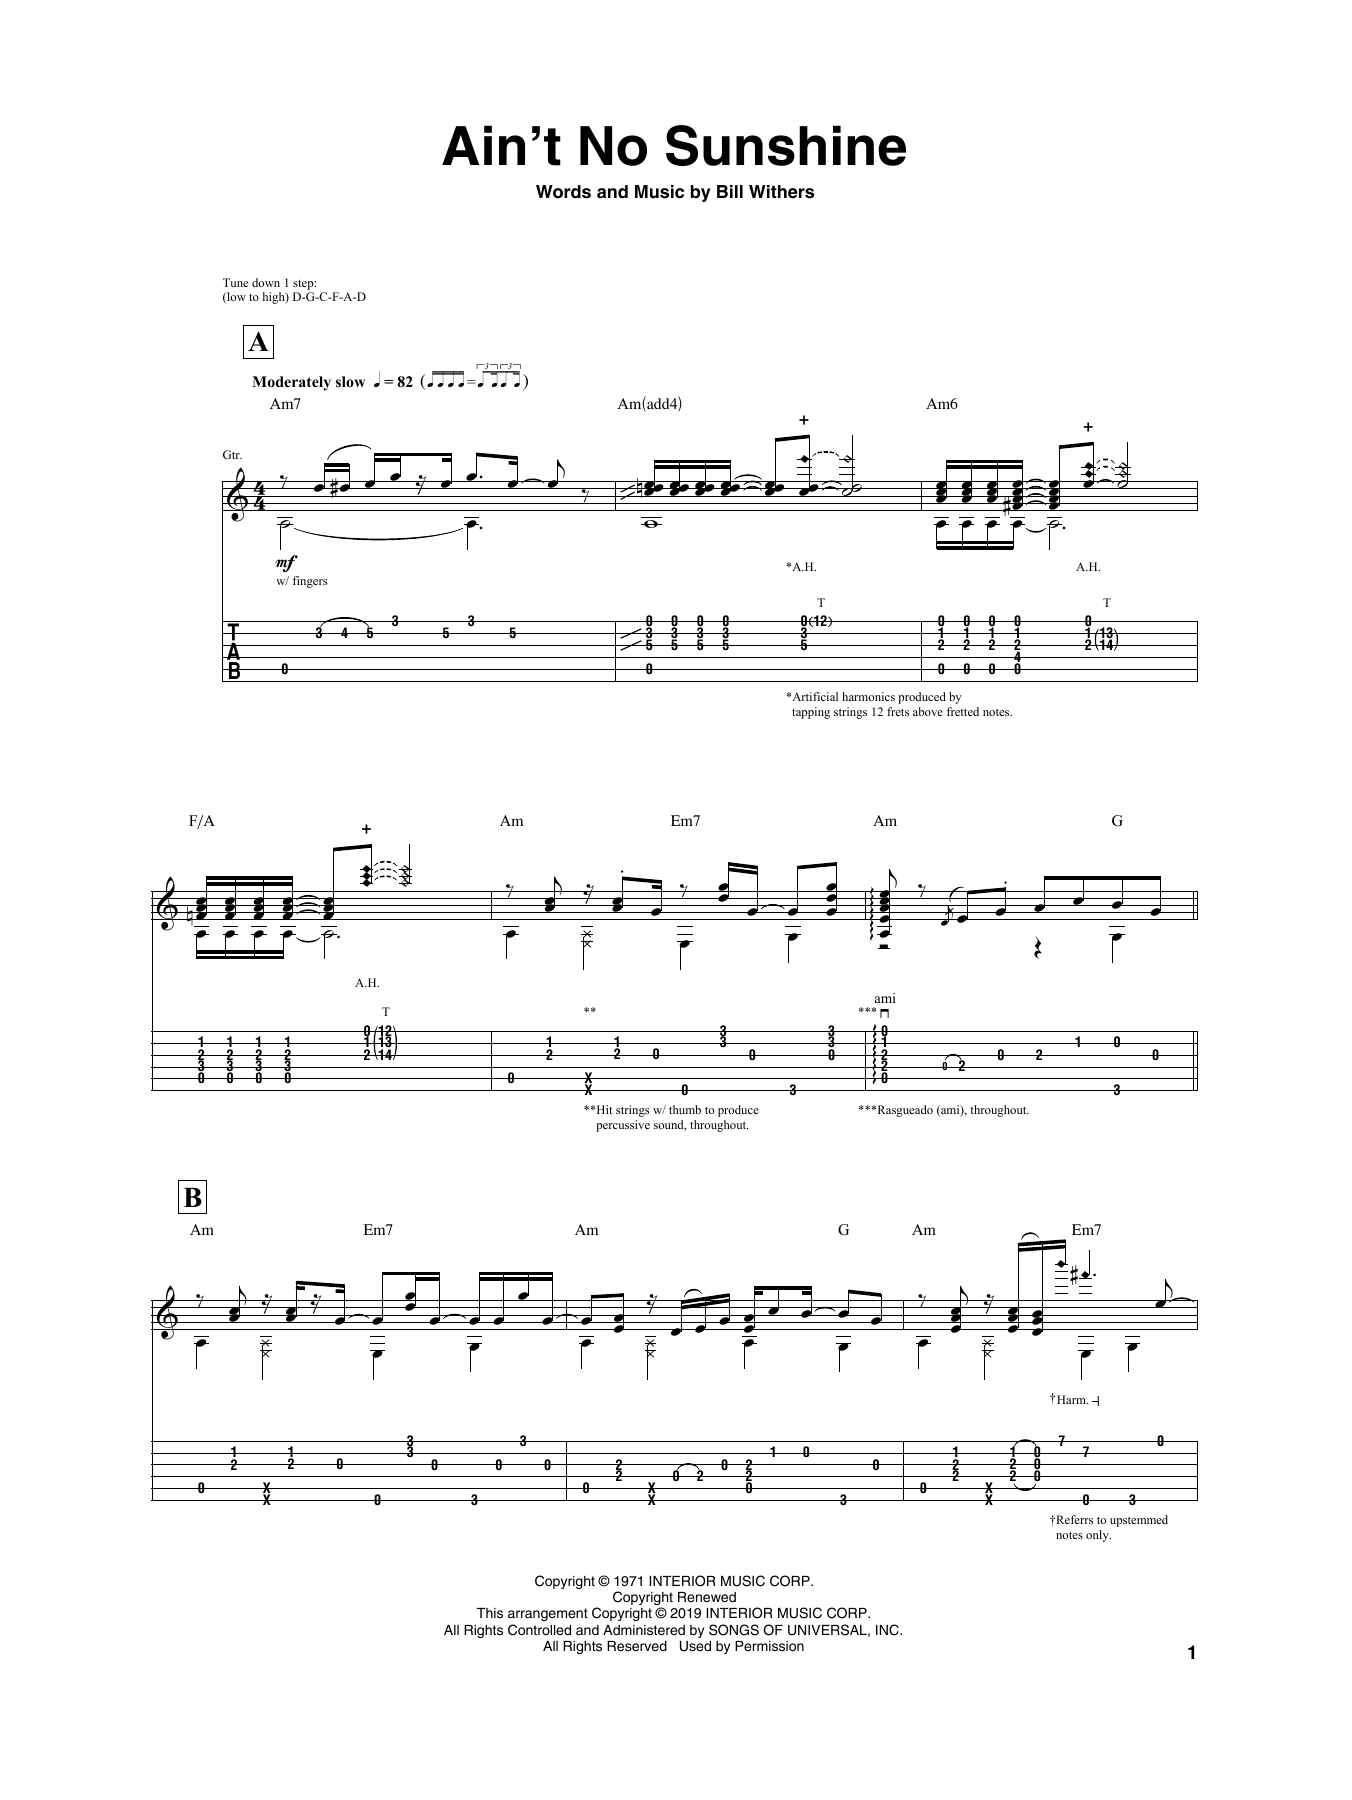 Igor Presnyakov Ain T No Sunshine Sheet Music Pdf Notes Chords Pop Score Guitar Tab Download Printable Sku 407177 Dm c ain't no sunshine when she's gone, and this house just ain't no home, am em am anytime she goes away. igor presnyakov ain t no sunshine sheet music notes chords download printable guitar tab pdf score sku 407177